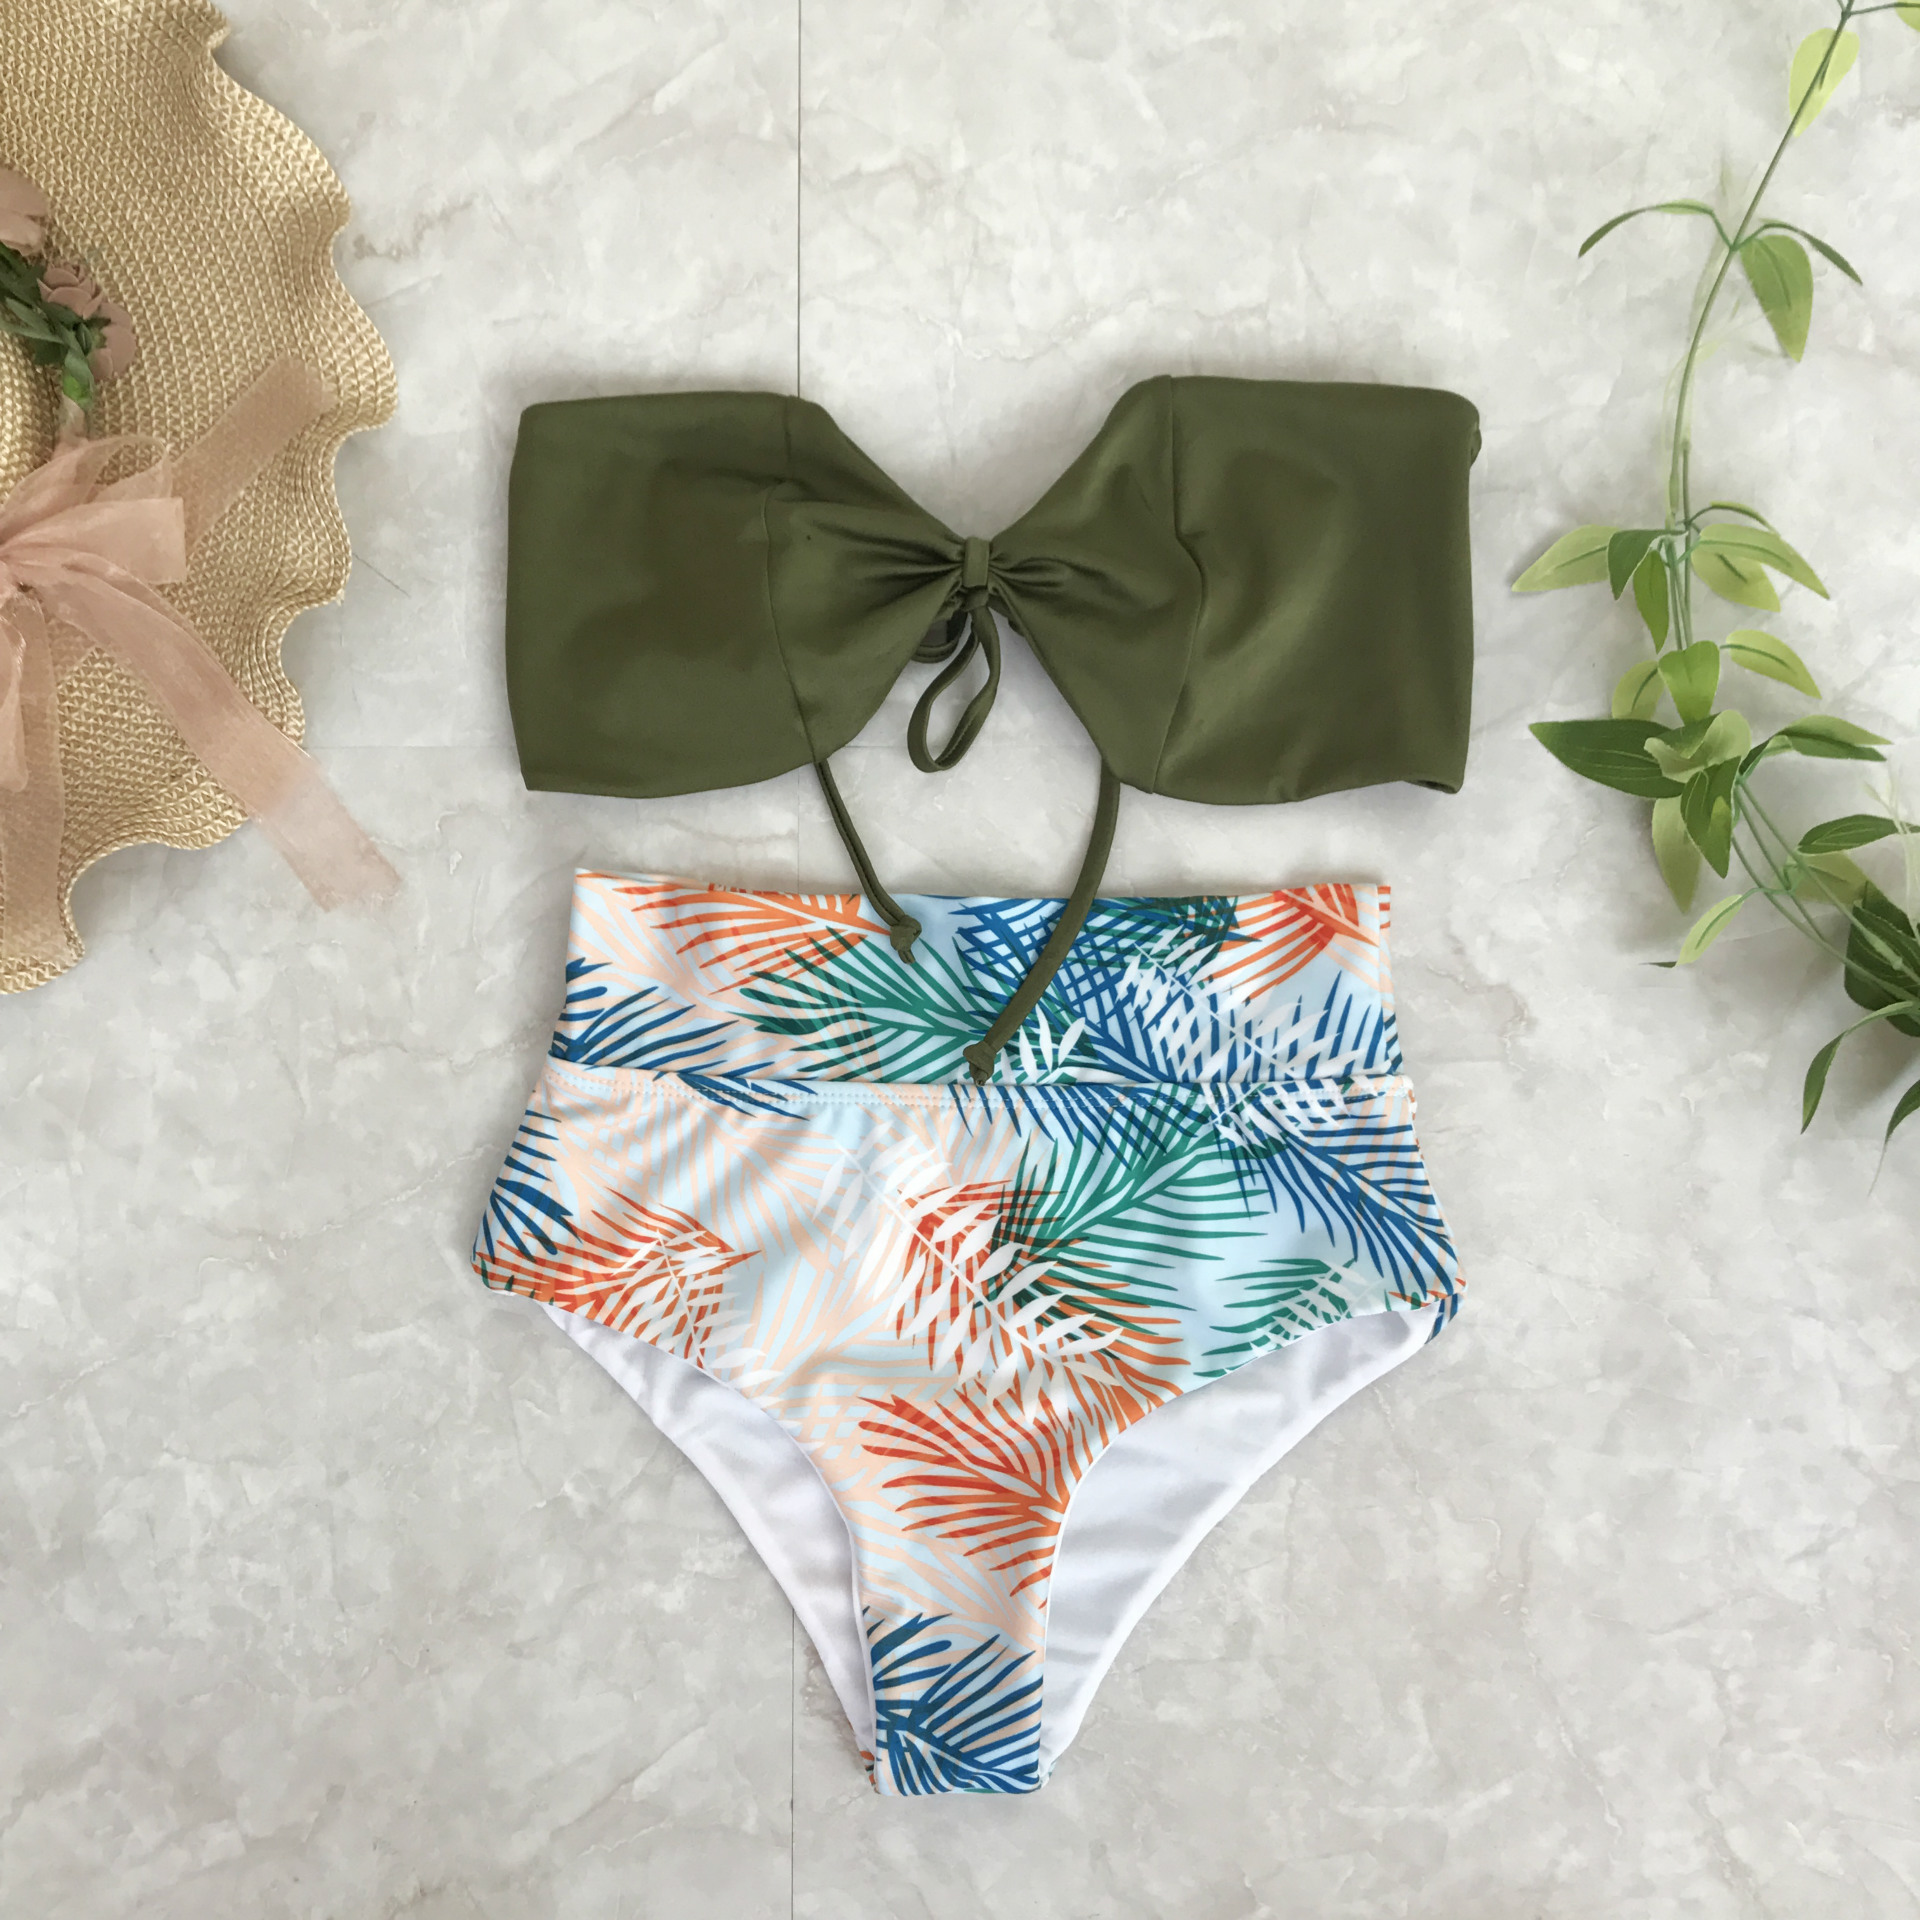 Sexy Floral Print High Waist Swimsuit Bikini Push Up Swimwear Women Vintage Retro Bathing Suit Bandeau Solid Top Lady summer sexy swimsuit vintage high waist bikini retro push up swimwear women plus size bathing suit printed floral bikinis set